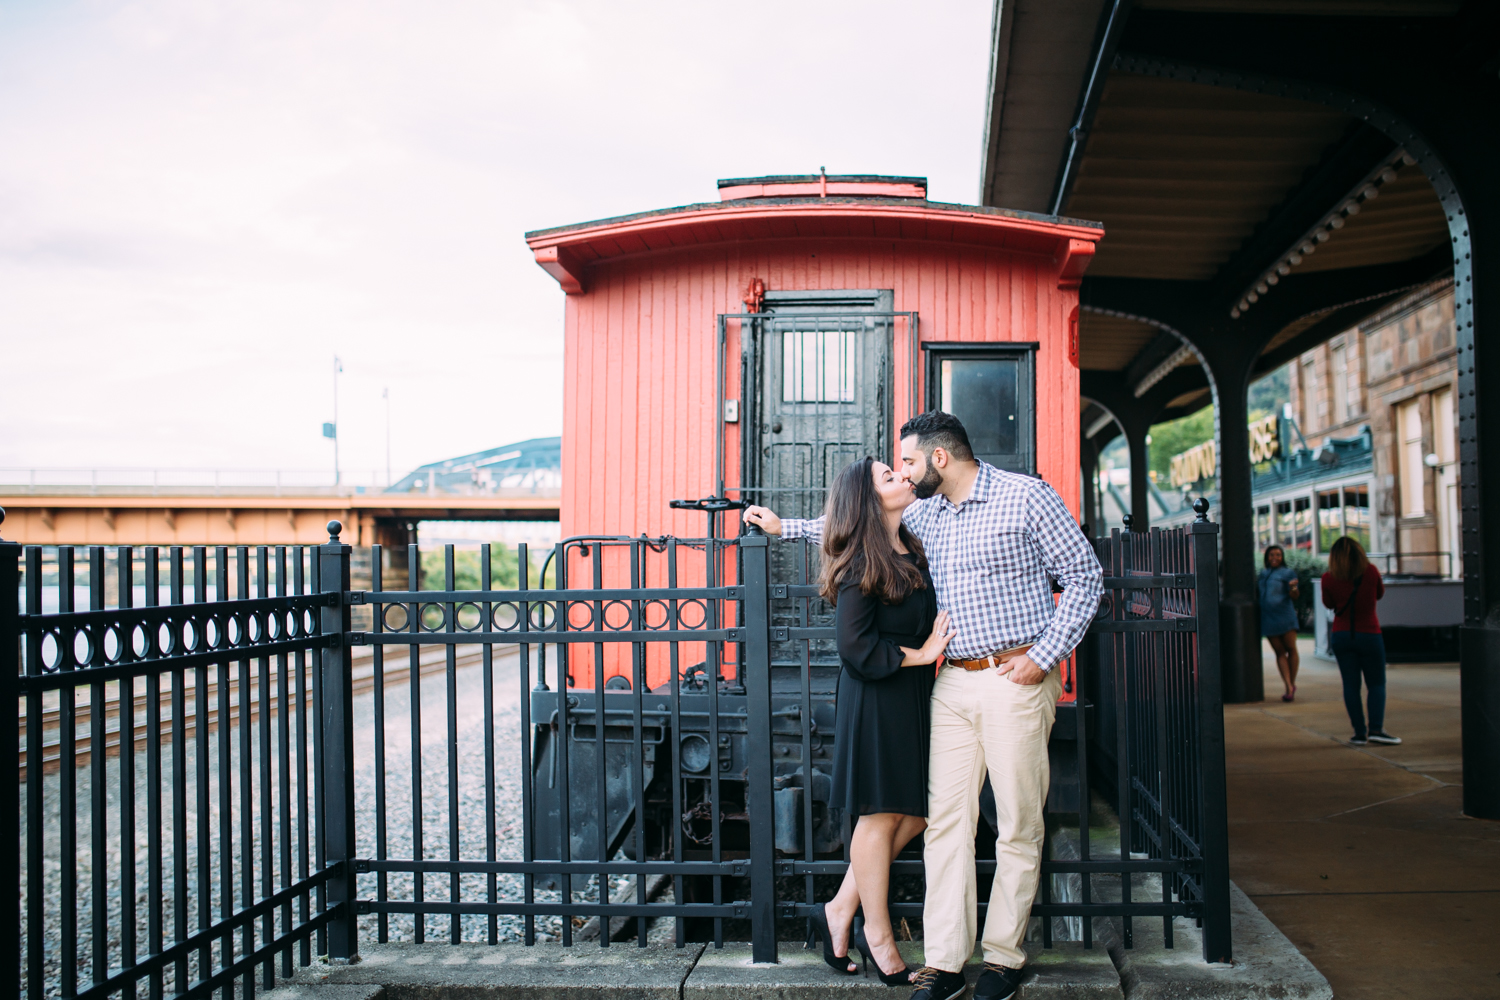 Ashley-reed-photography-pittsburgh-engagement-engagementphotography-engagementphotographer-stationsquare-statio-square-pittsburghengagementphotography-14.jpg